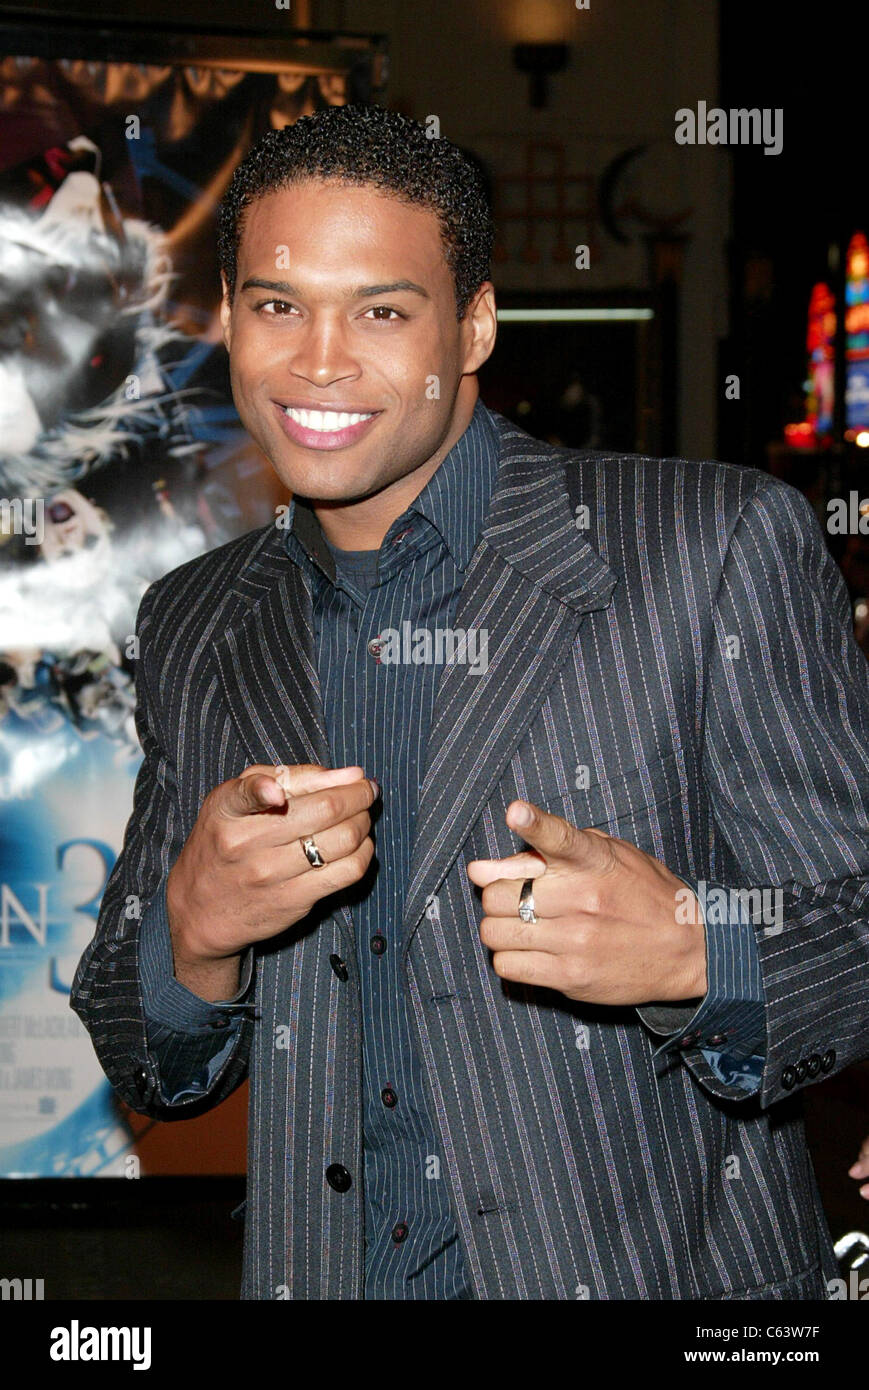 Texas Battle at arrivals for FINAL DESTINATION 3 Premiere, Grauman's Chinese Theatre, Los Angeles, CA, February Stock Photo